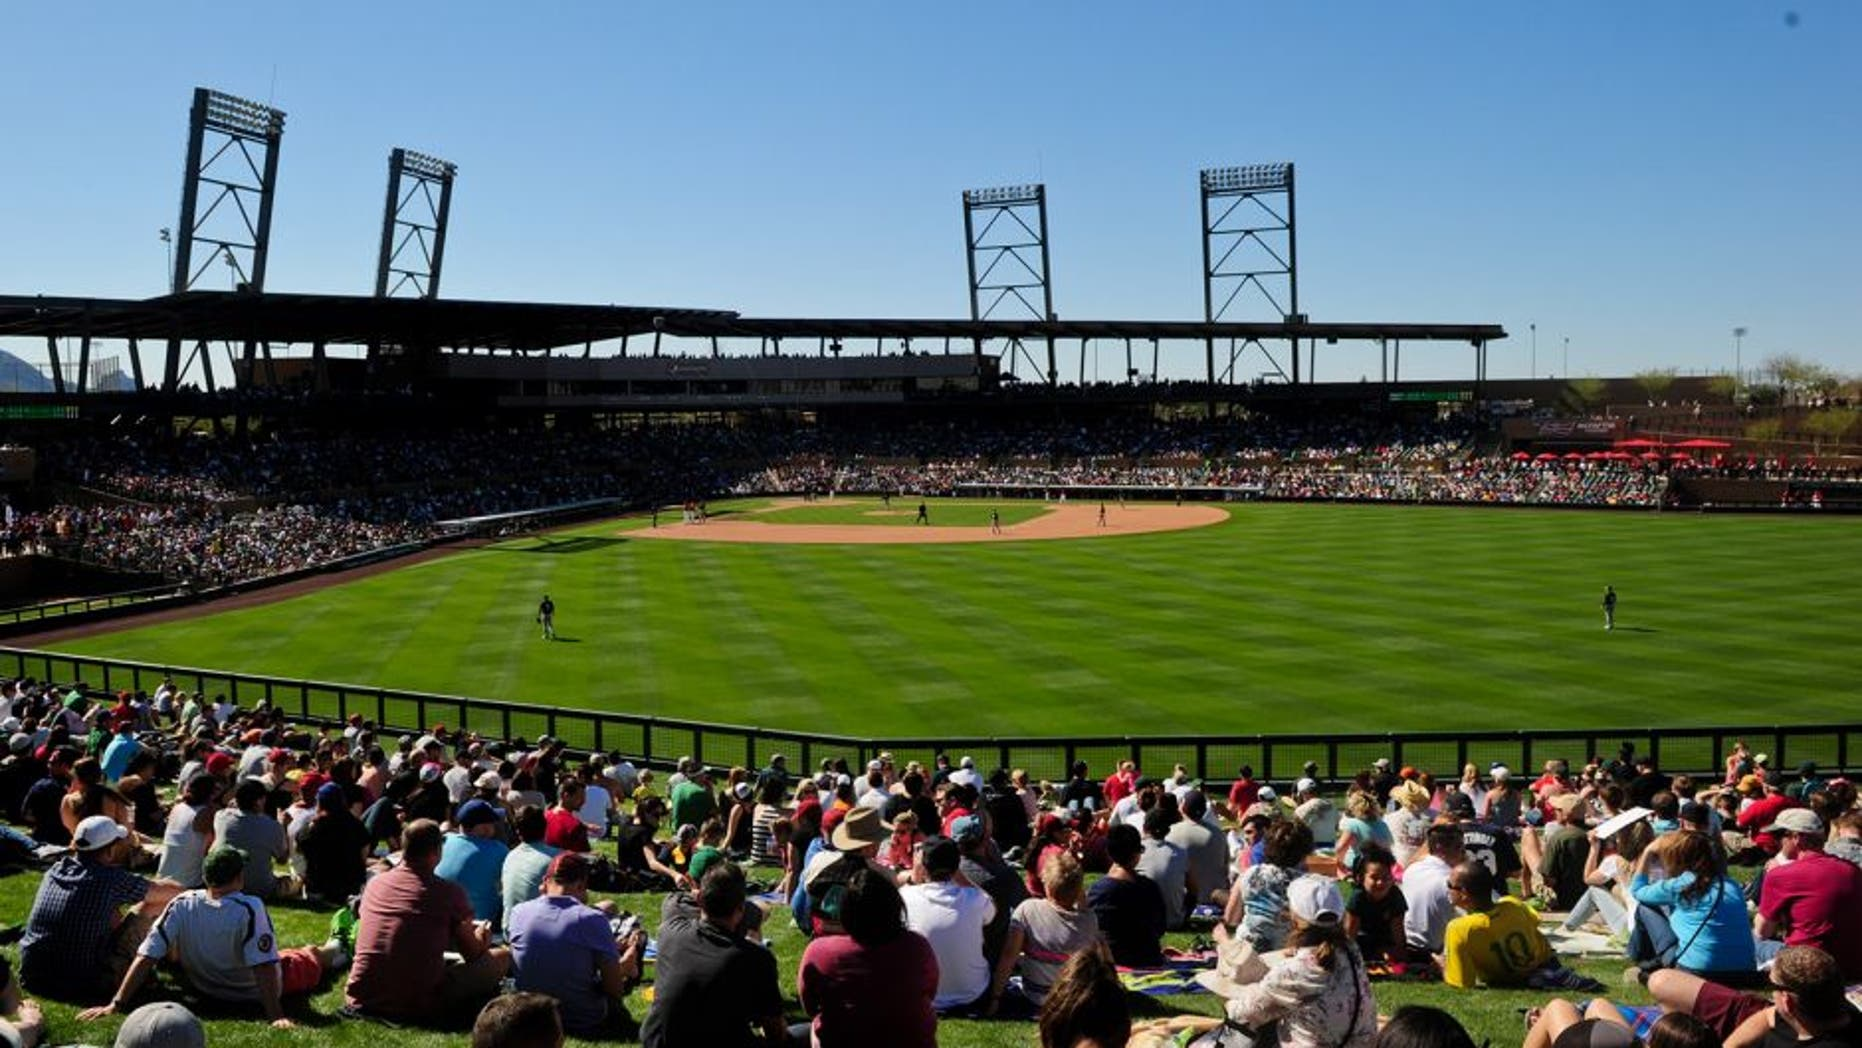 Mar 6, 2015; Salt River Pima-Maricopa, AZ, USA; Fans watch the game between the Arizona Diamondbacks and the Oakland Athletics from the outfield lawn during a spring training baseball game at Salt River Fields at Talking Stick. Mandatory Credit: Matt Kartozian-USA TODAY Sports